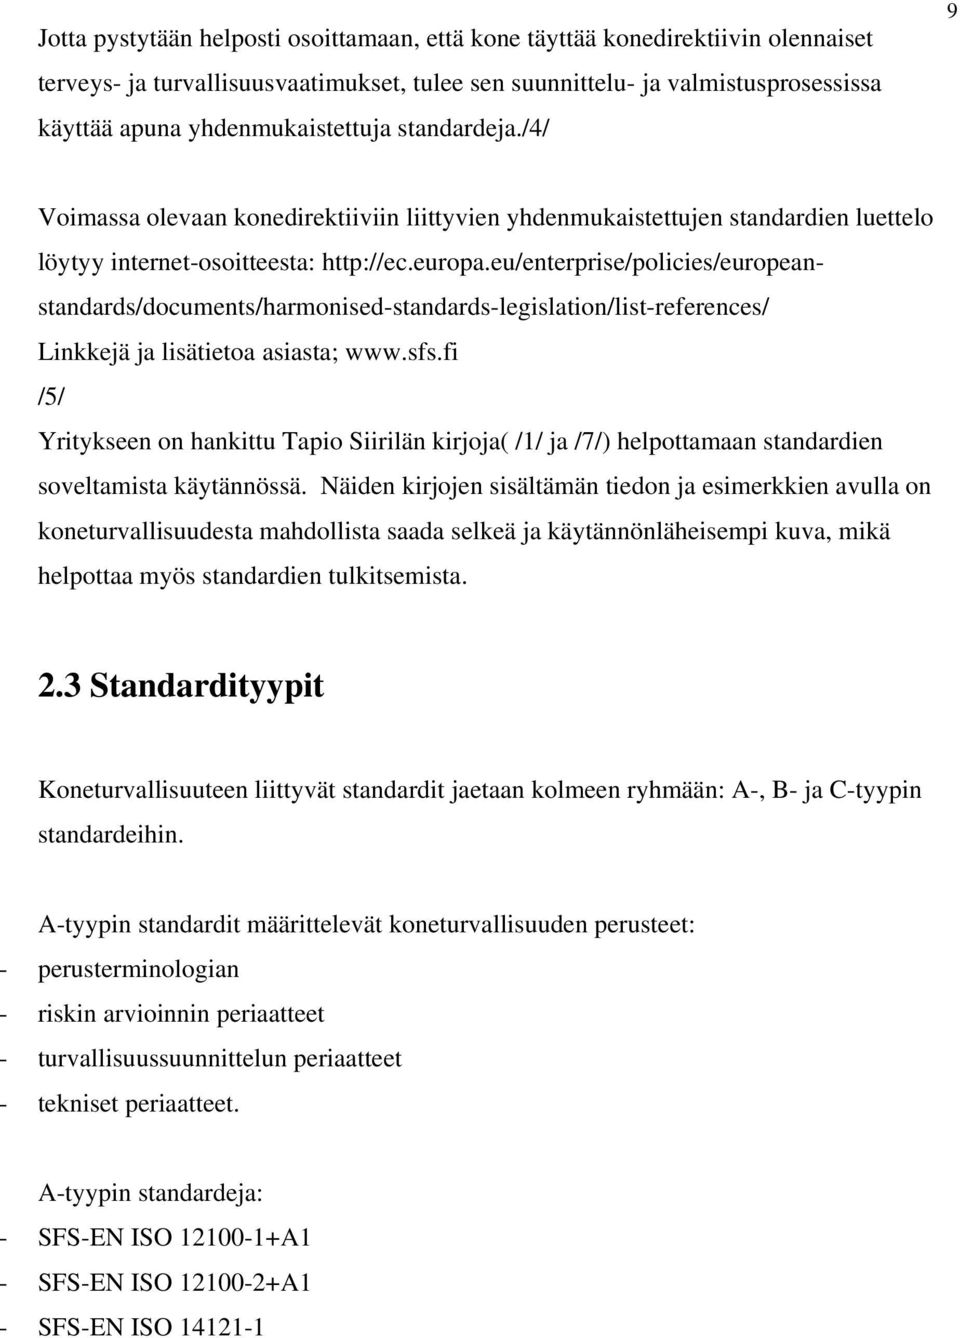 eu/enterprise/policies/europeanstandards/documents/harmonised-standards-legislation/list-references/ Linkkejä ja lisätietoa asiasta; www.sfs.